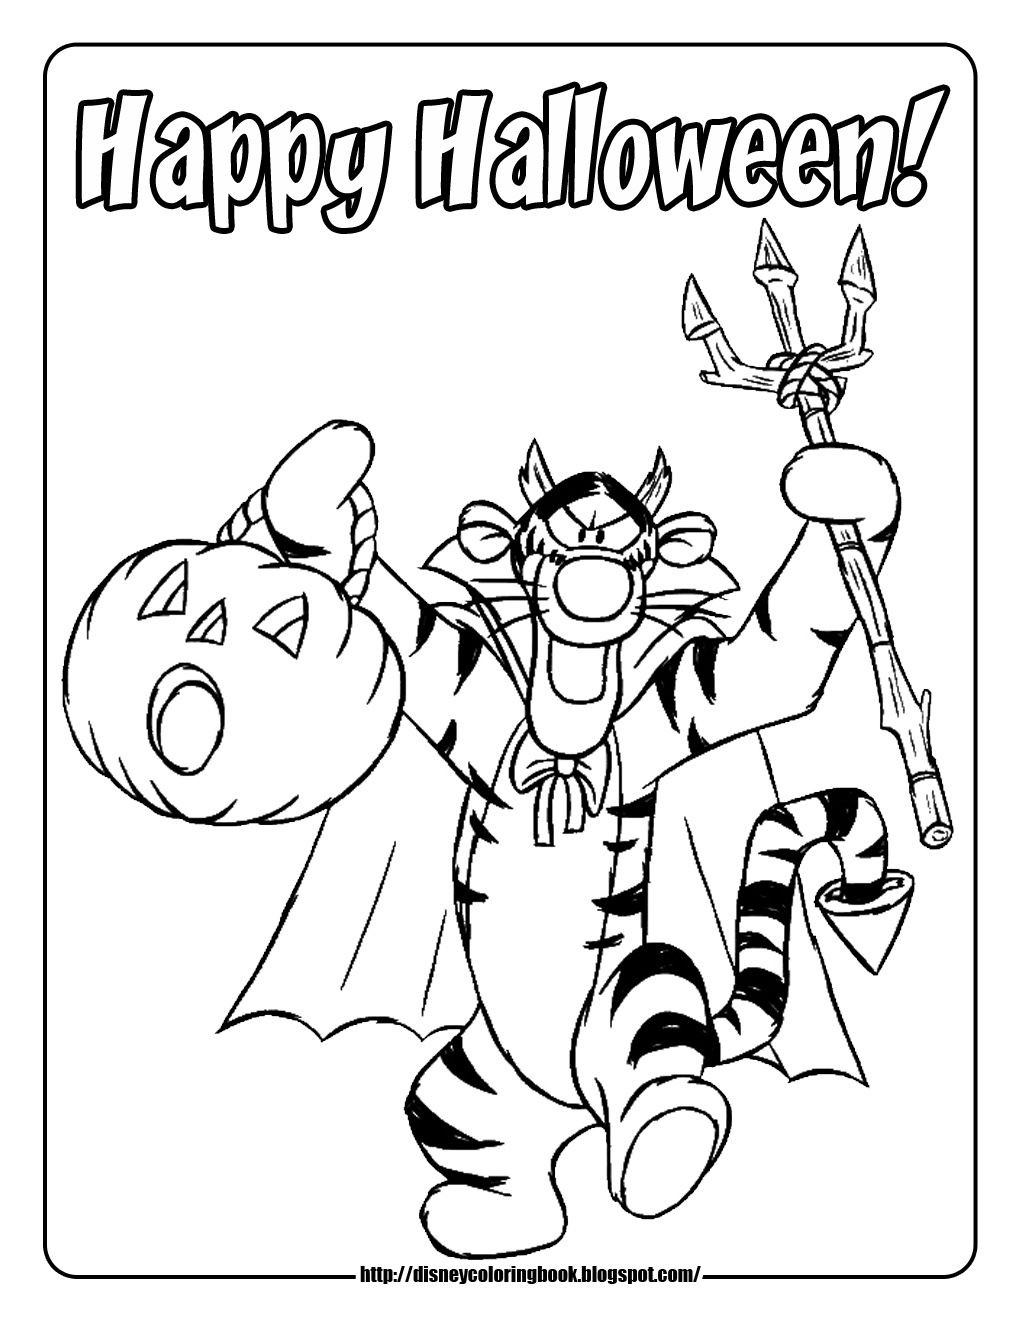 Disney Halloween Coloring Pages Piglet Pumpkin Happy Tigger